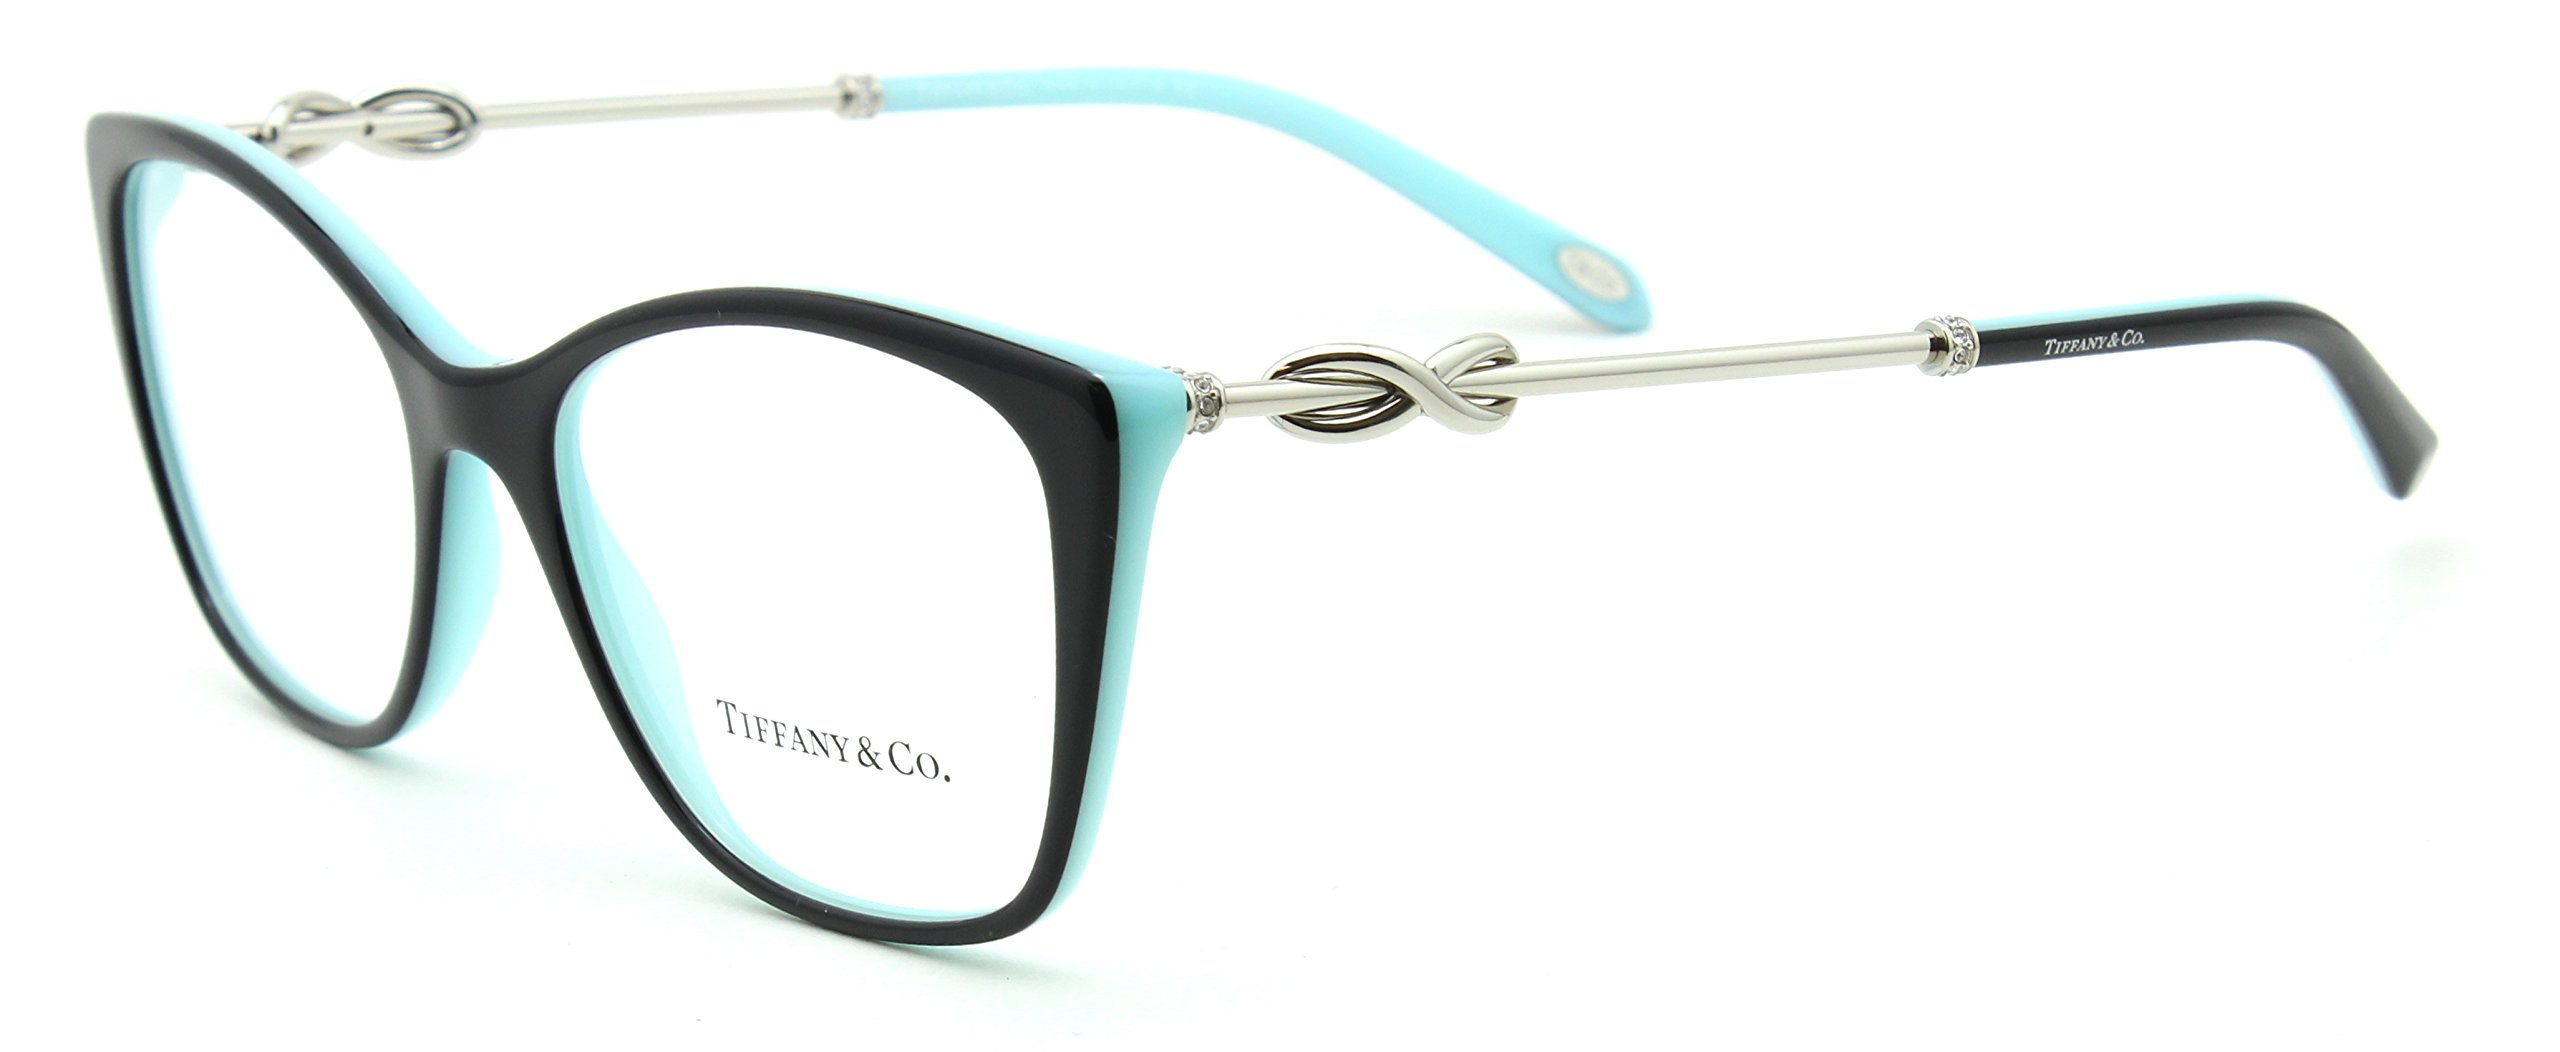 Tiffany Co Tf 2160 B Women Prescription Eyeglasses Rx Able Frame 8055 52mm Buy Online In Gambia Tiffany Co Products In Gambia See Prices Reviews And Free Delivery Over 3 500 D Desertcart